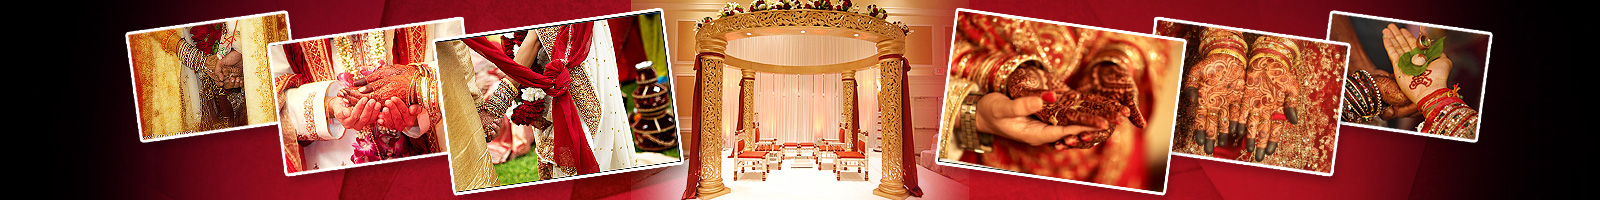 Get latest updates of World of Wedding from Mangal Fera, A highly recommended website to find best match for life partner.